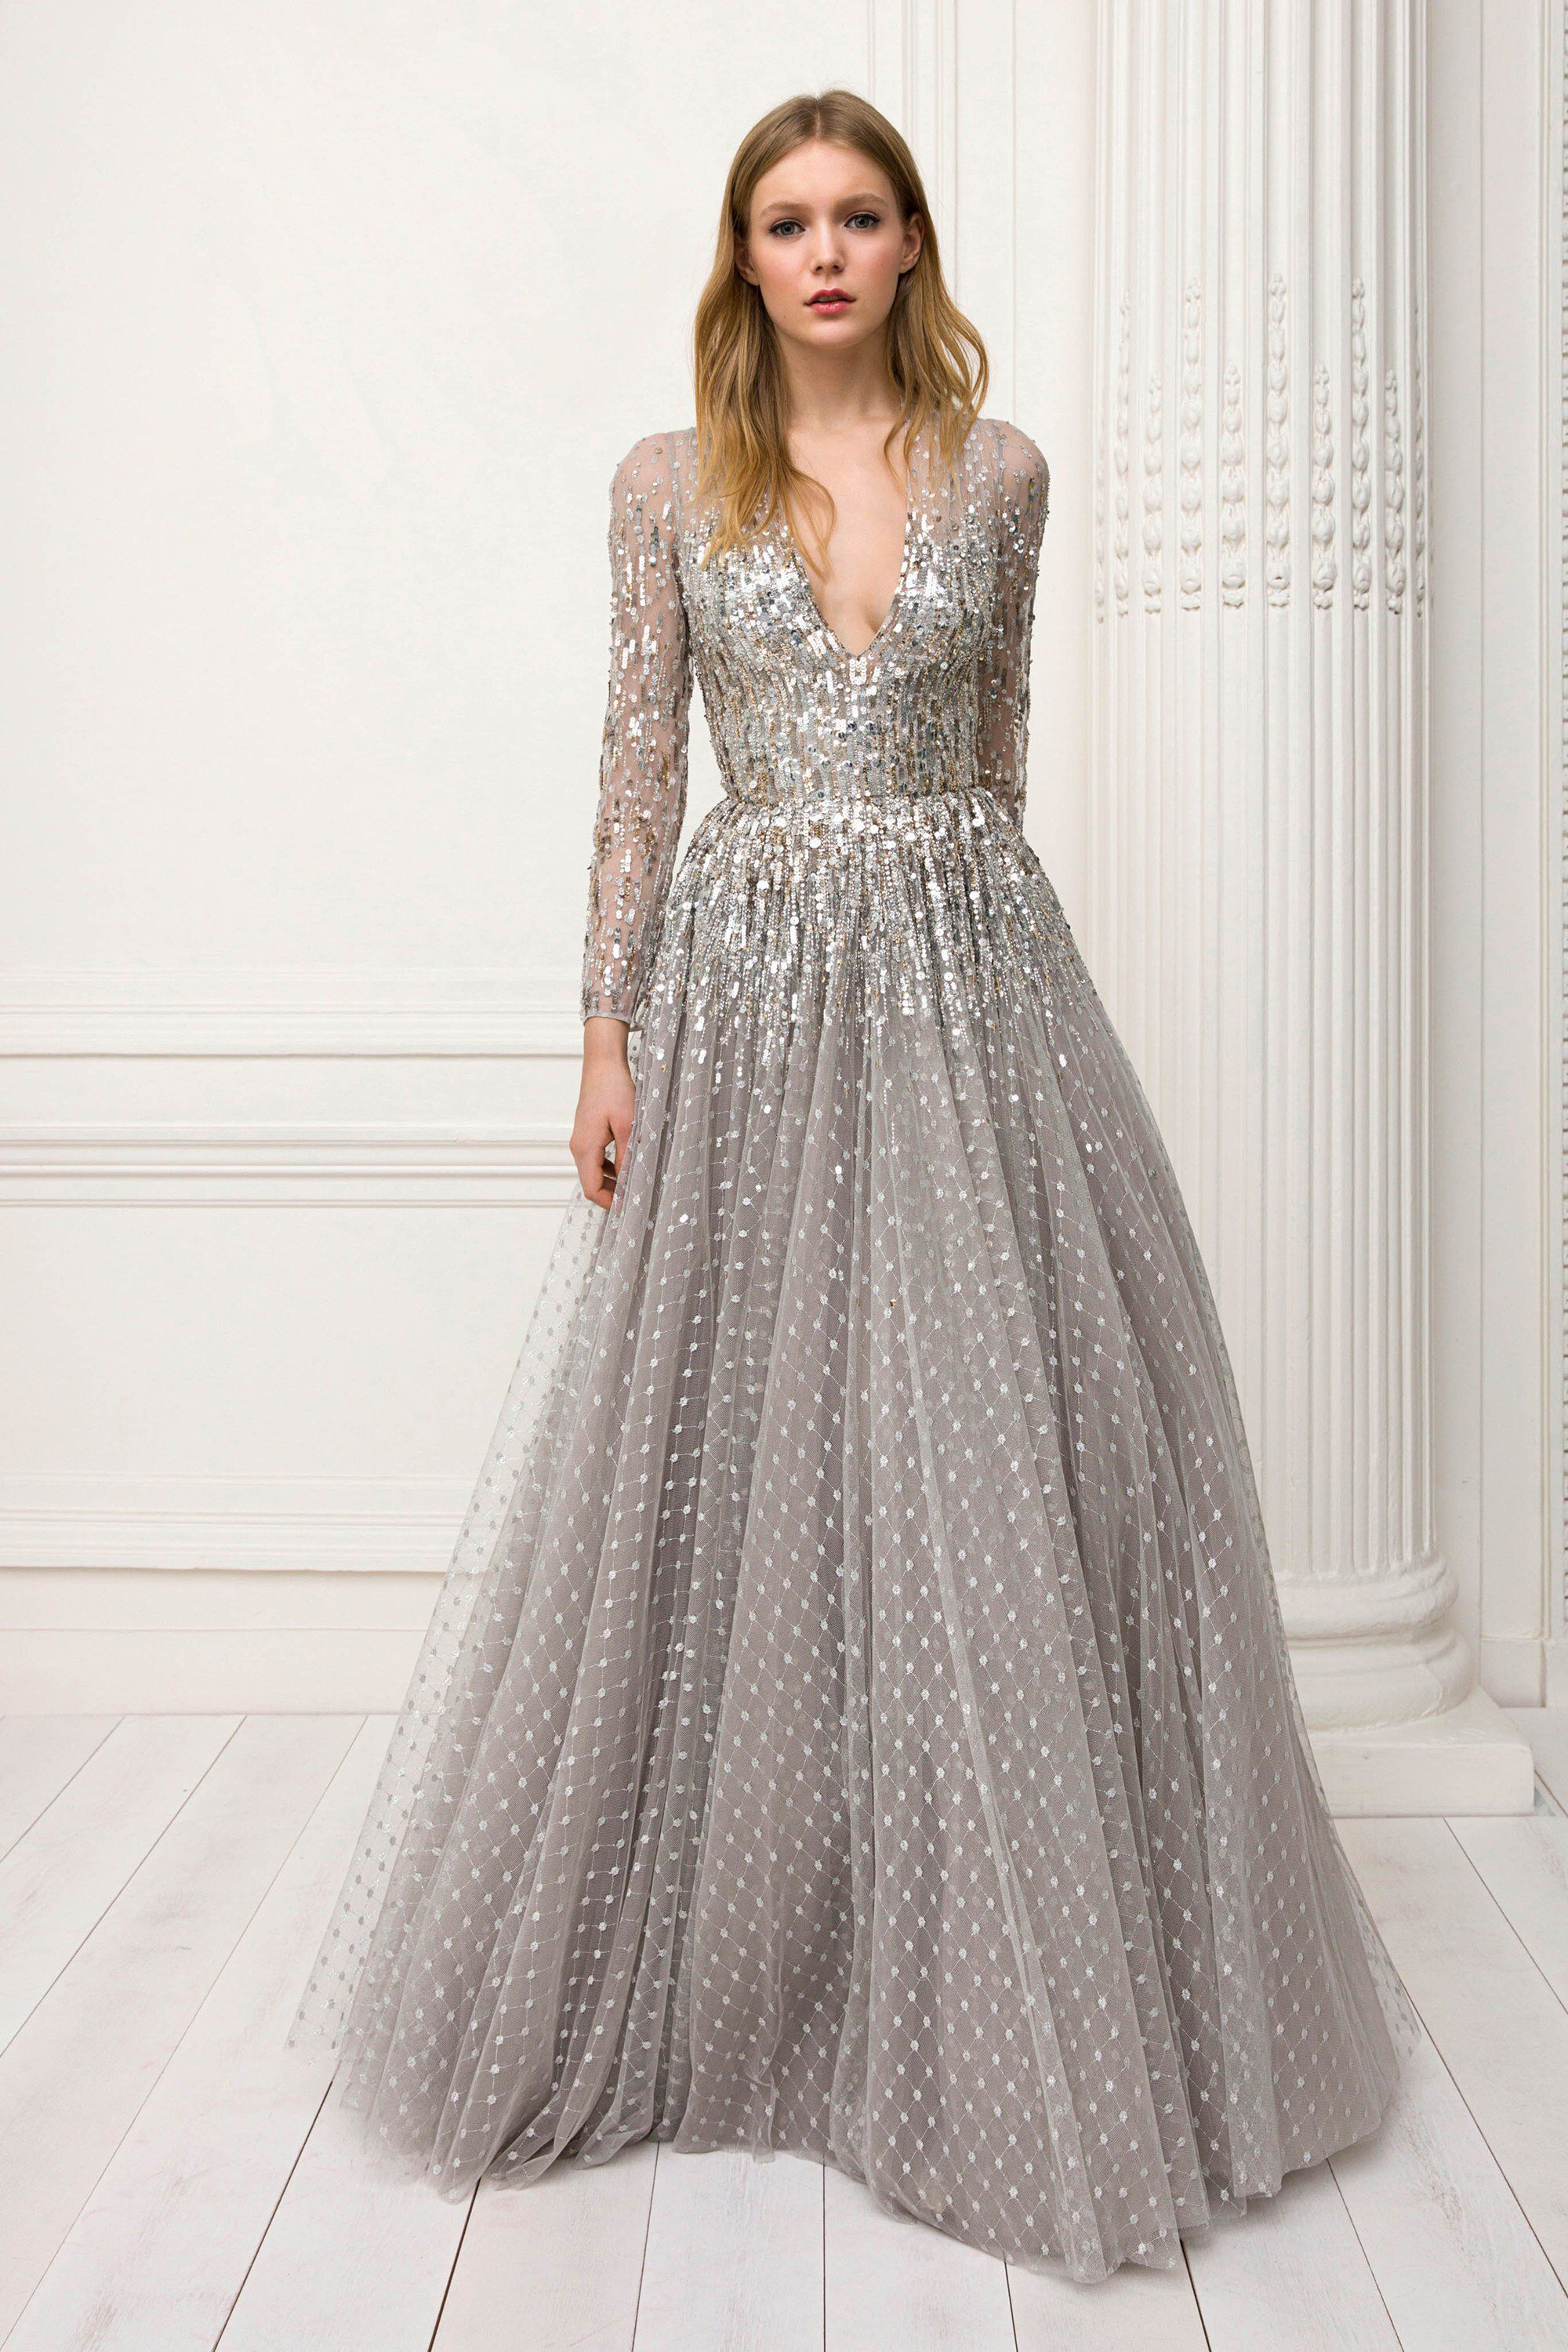 Jenny Packham Pre-Fall 2018  I m obsessed with the grey gown with a mix of  sequins and embellishments! I like how the gown has long sleeves! 0699d6826c9a